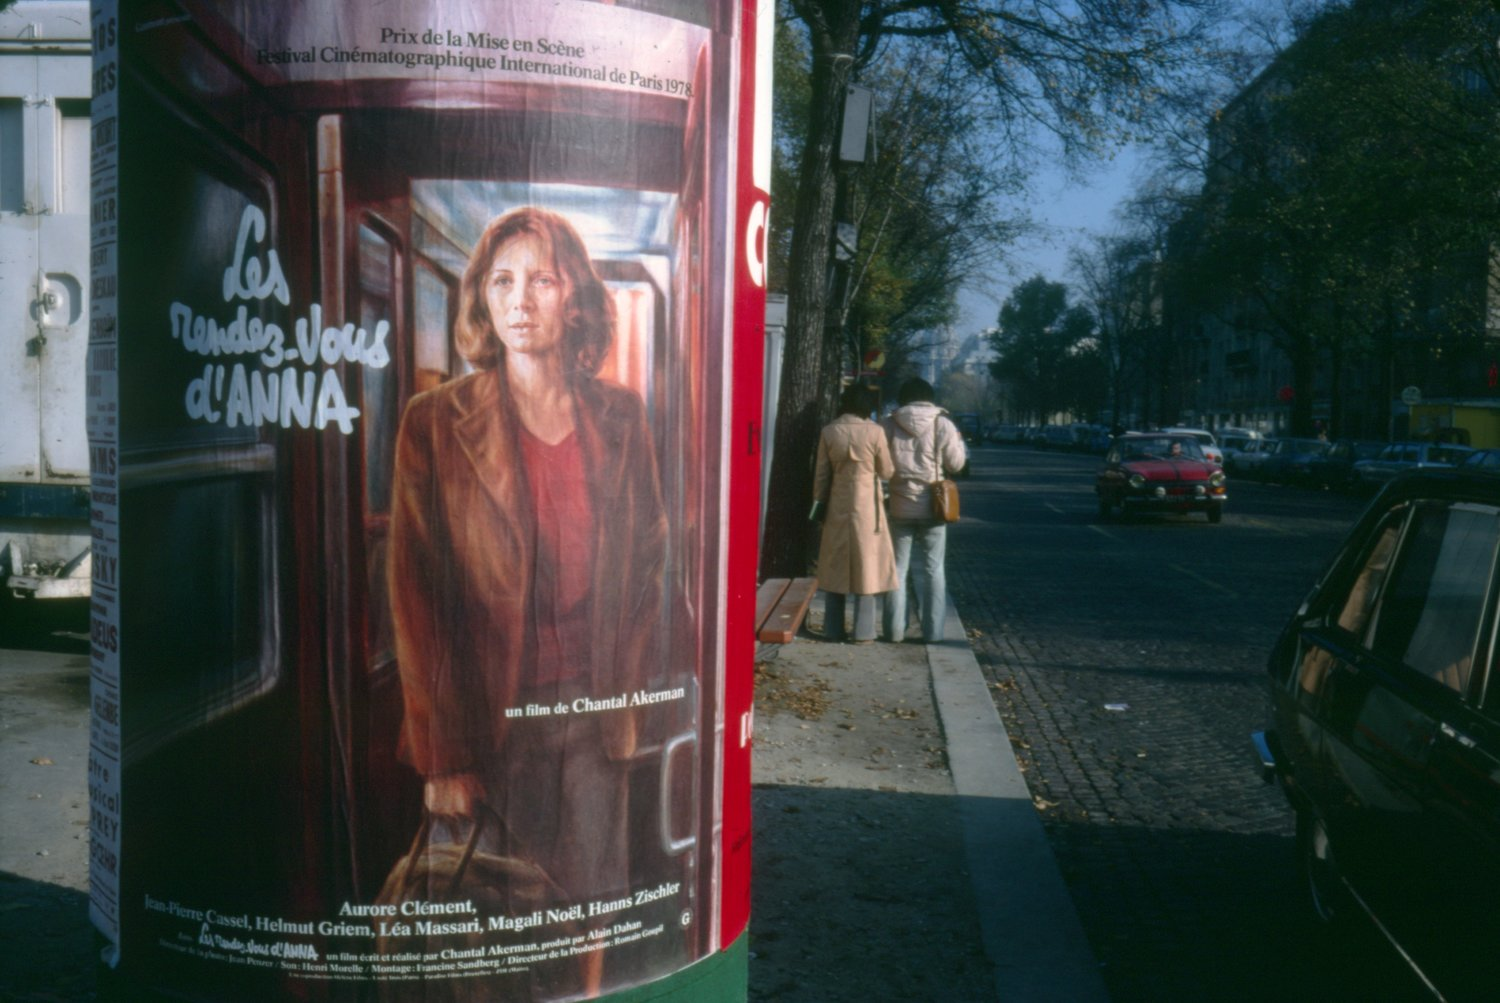 Guy Peellaert's film poster for Chantal Akerman's Les rendez-vous d'Anna, as it appeared in the streets of Paris in 1978.